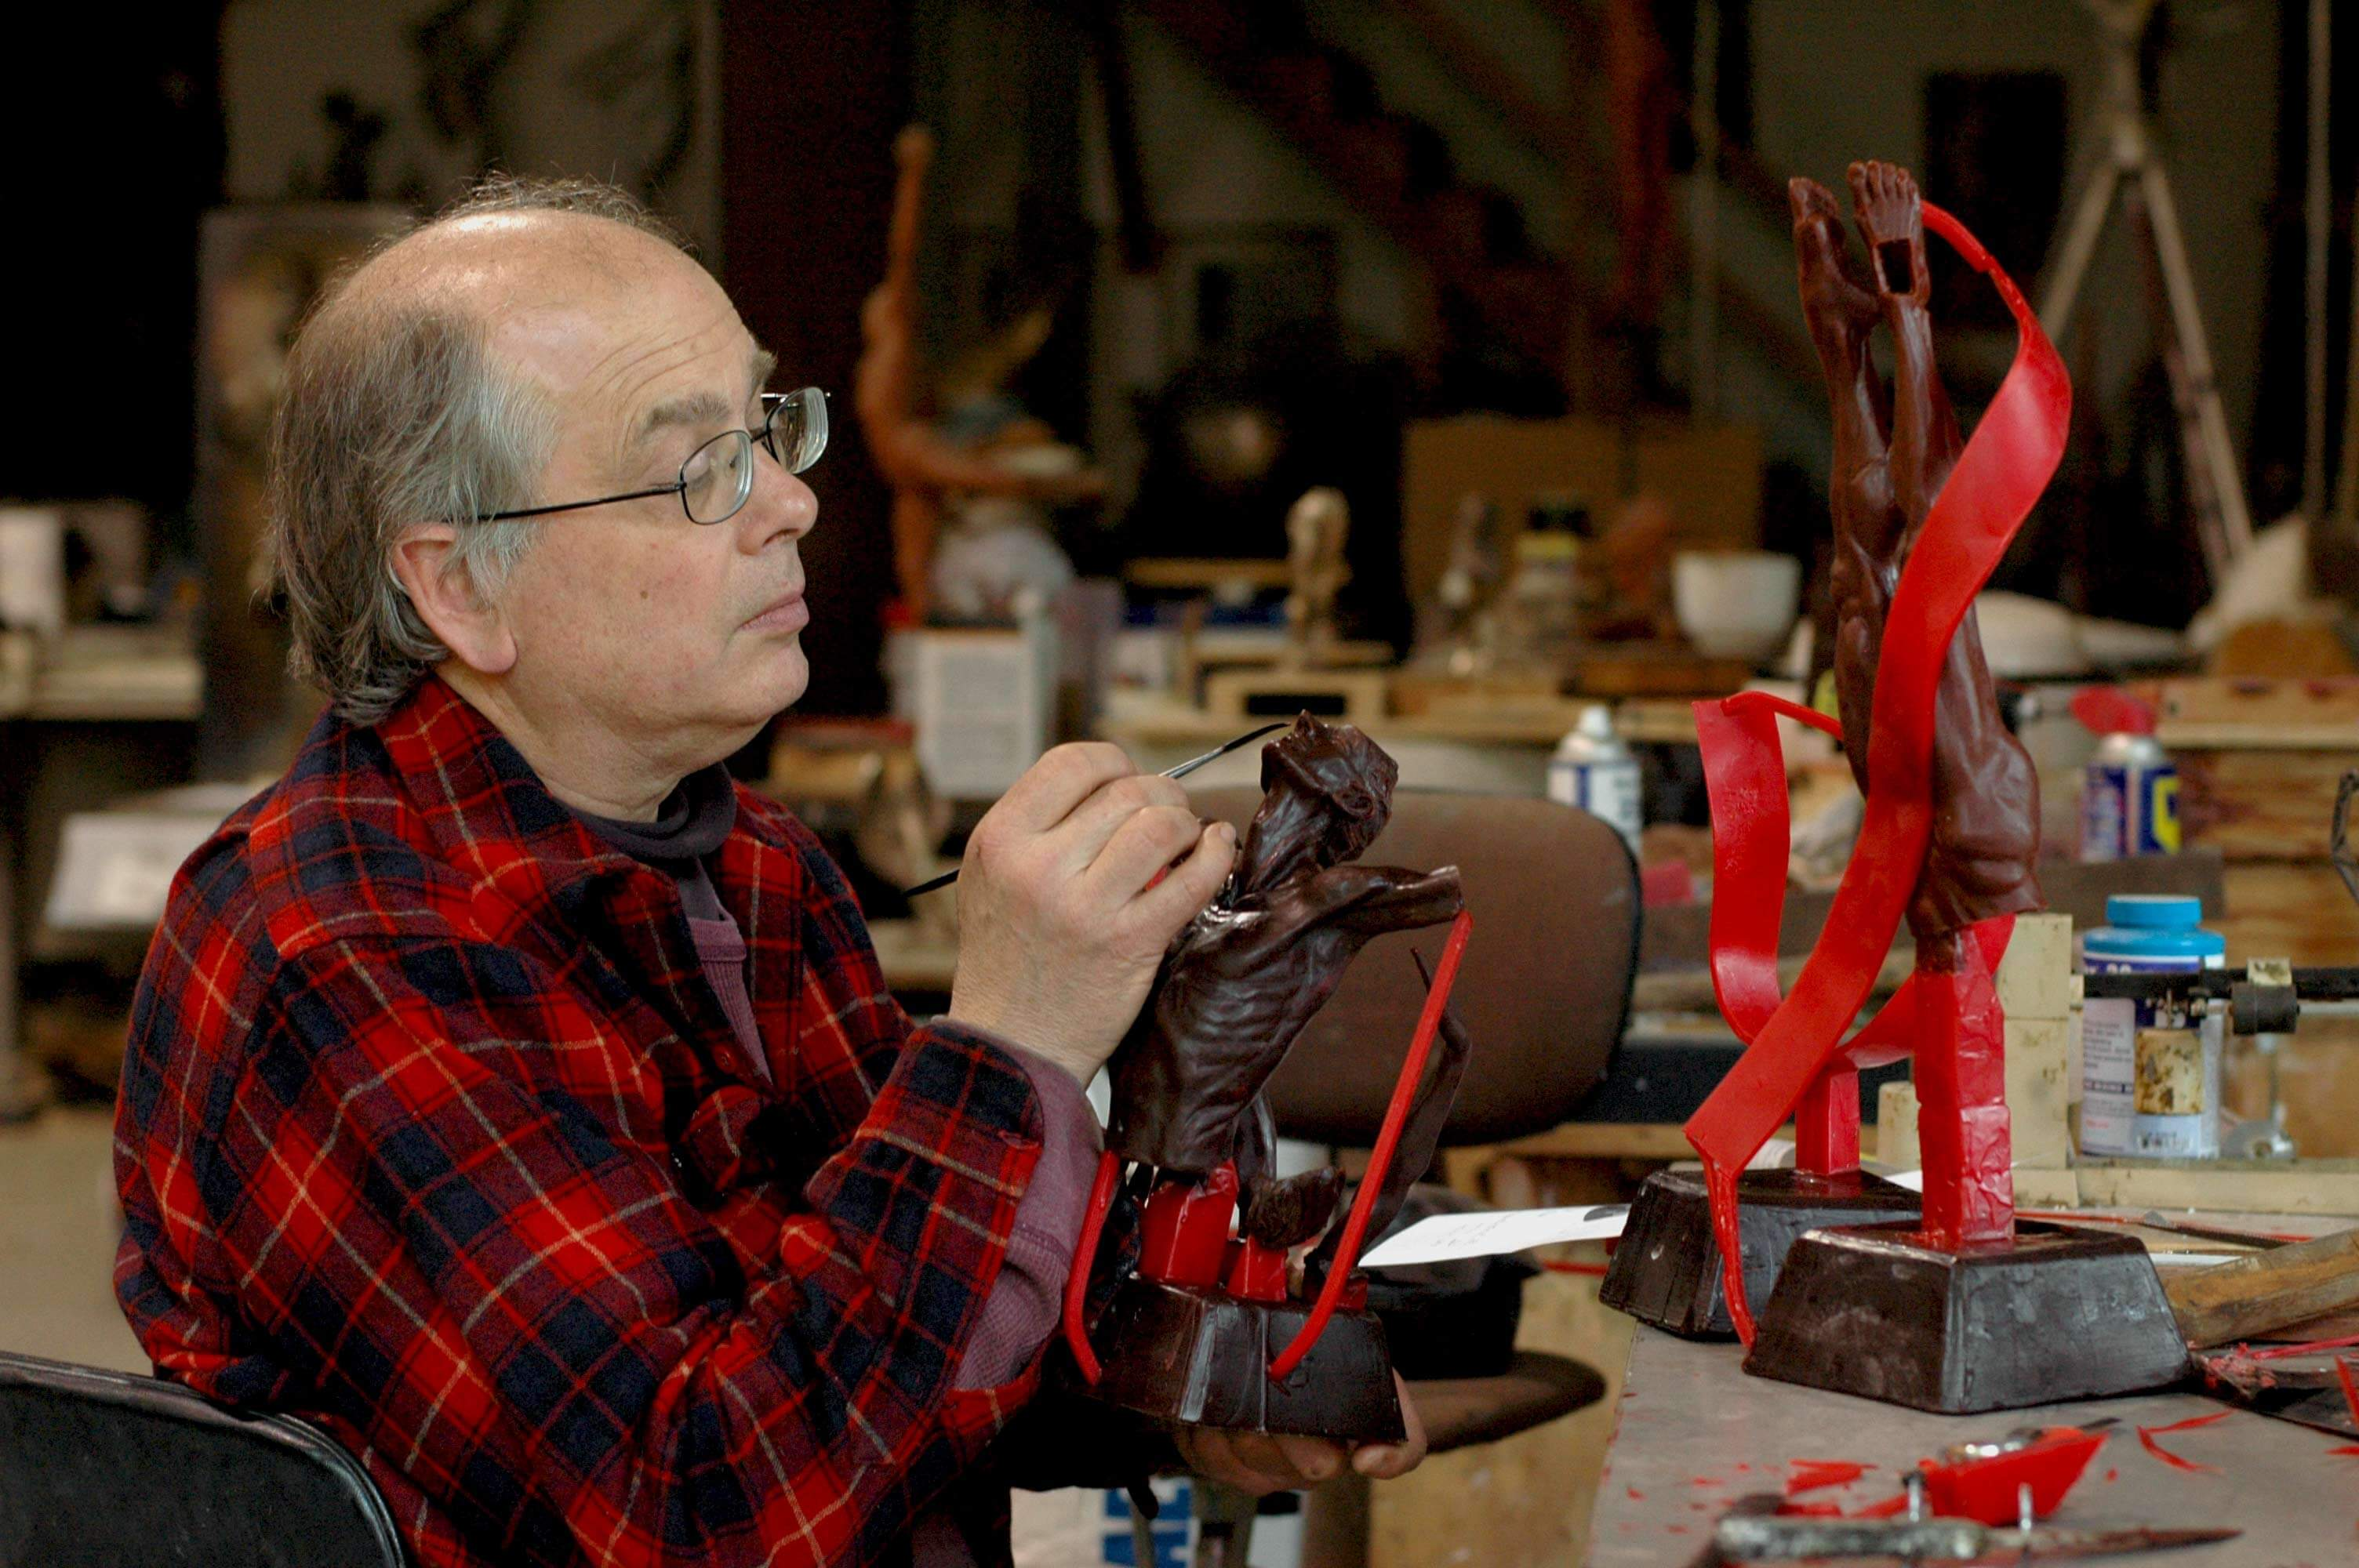 Sculptor Andrew deVries works on the maquette for the Echoes commission